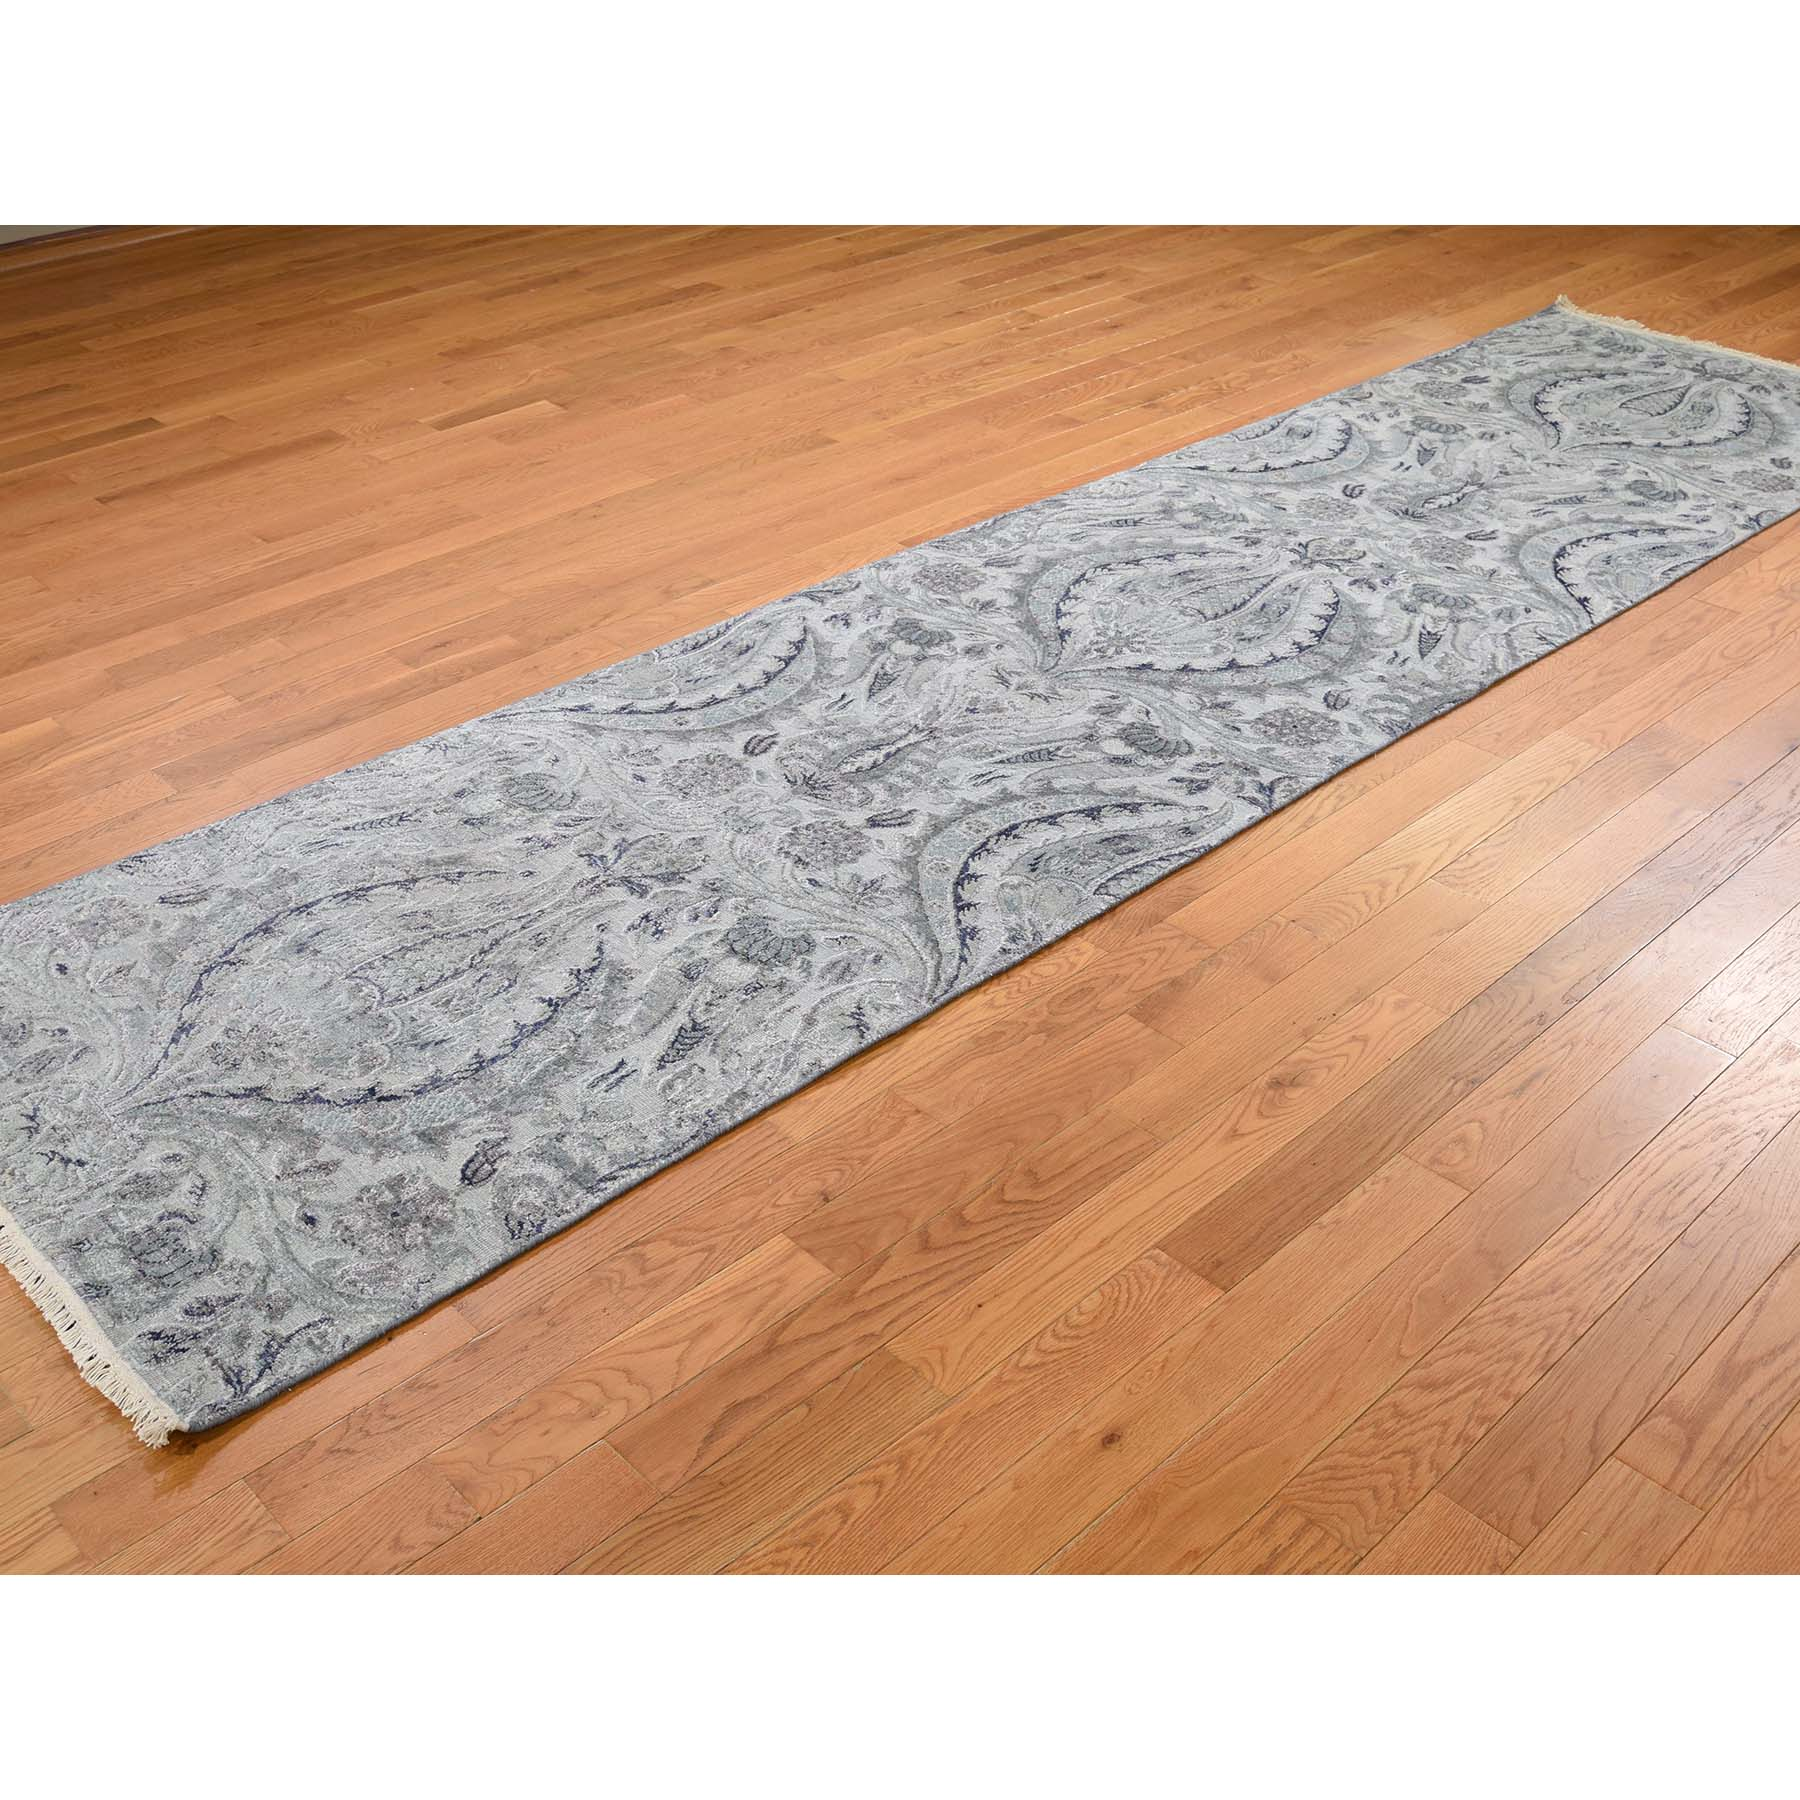 3-x11-10  Pure Silk With Oxidized Wool Lotus Flower Design Hand-Knotted Rug